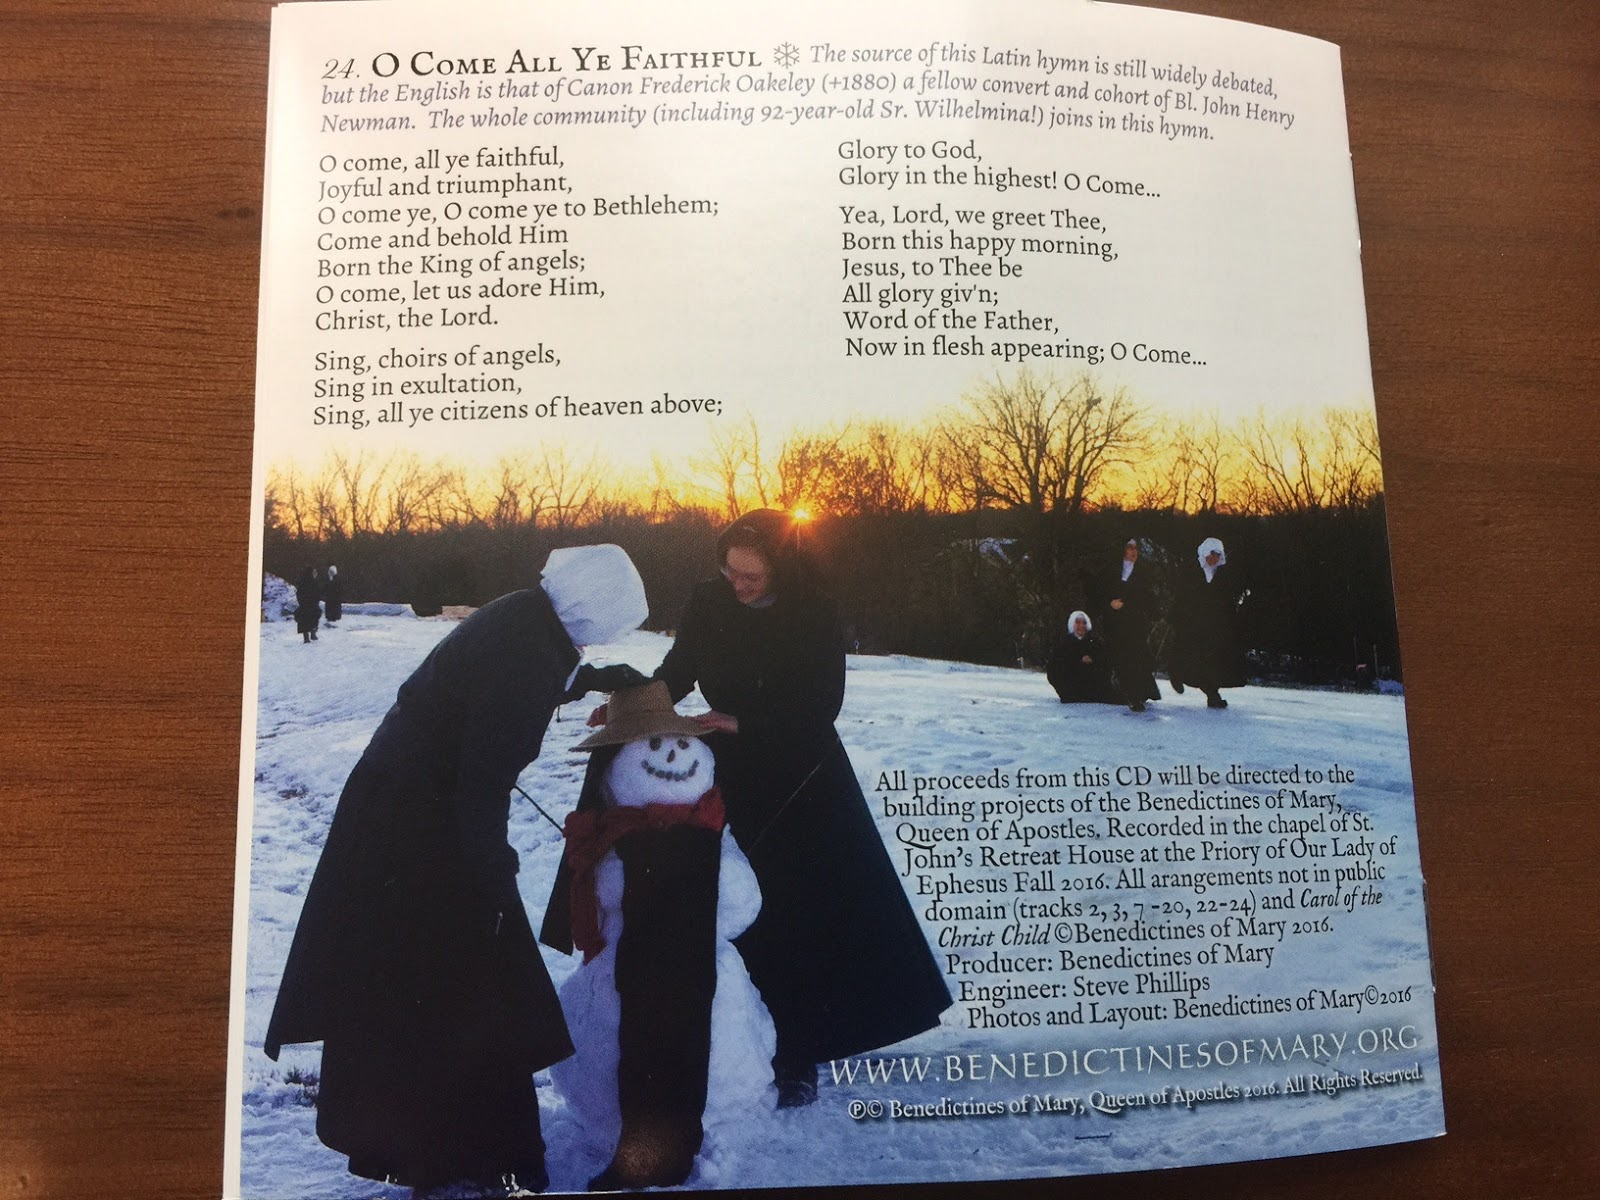 RORATE CÆLI: The Benedictines of Mary -- just in time for Christmas